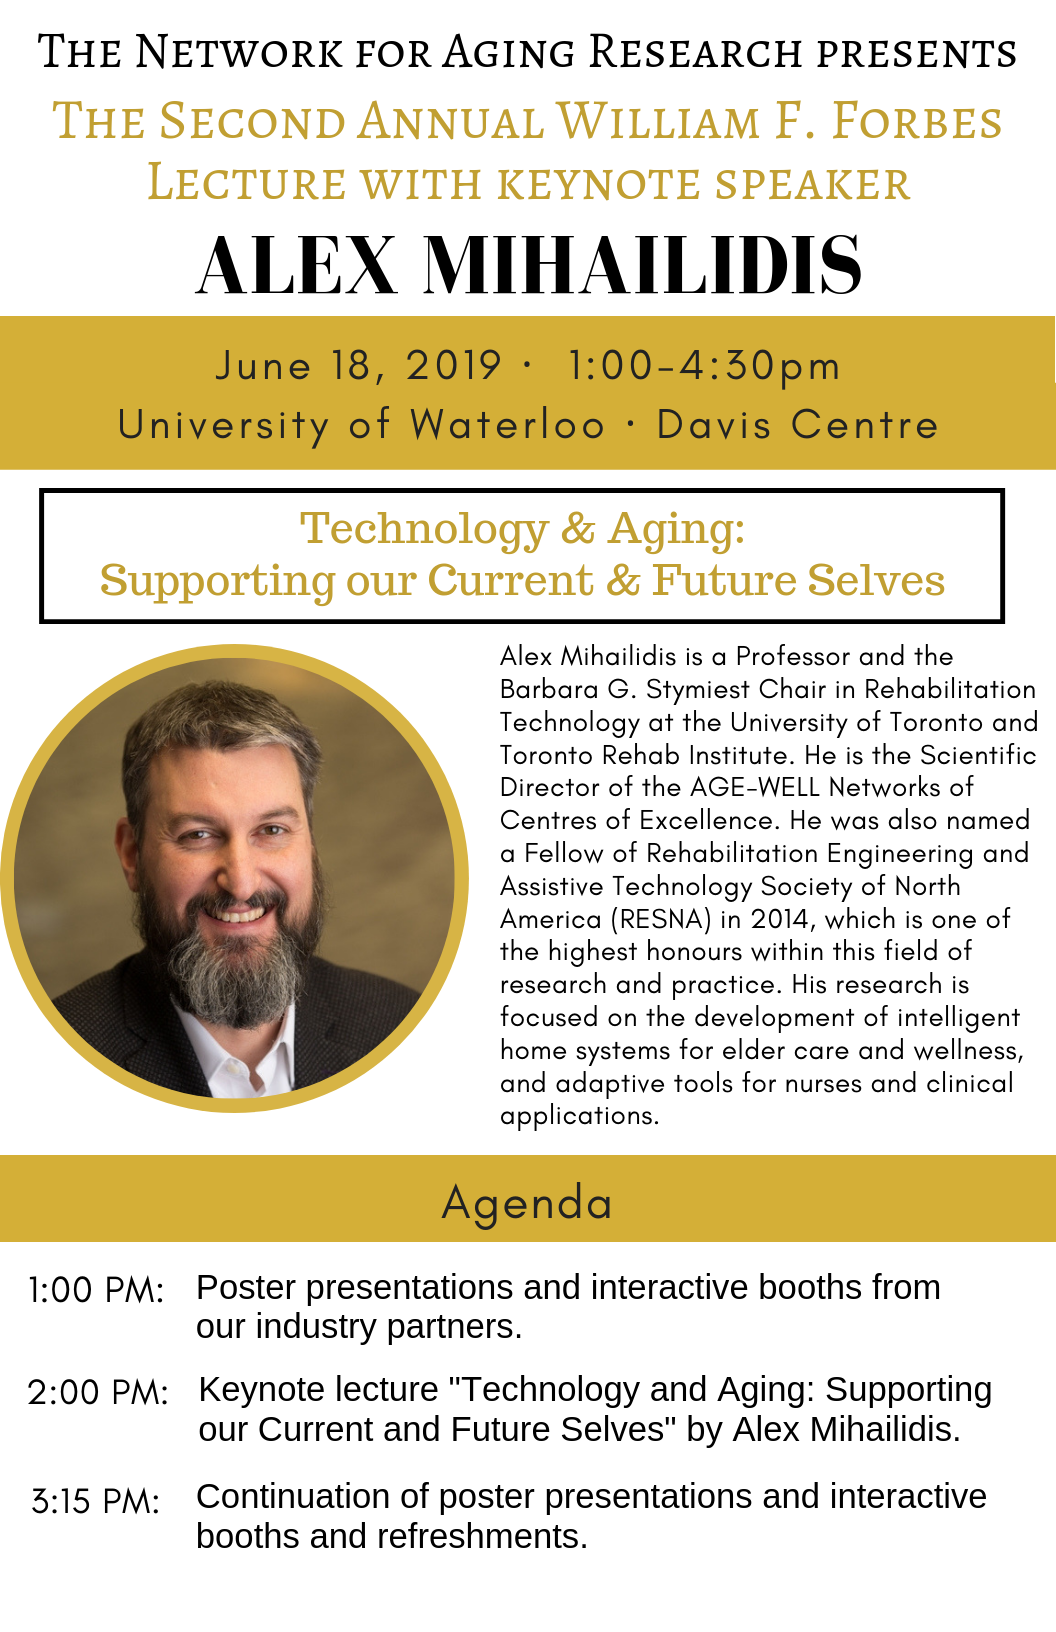 William F Forbes Lecture: Keynote Alex Mihailidis, technology and aging: supporting our current and future selves